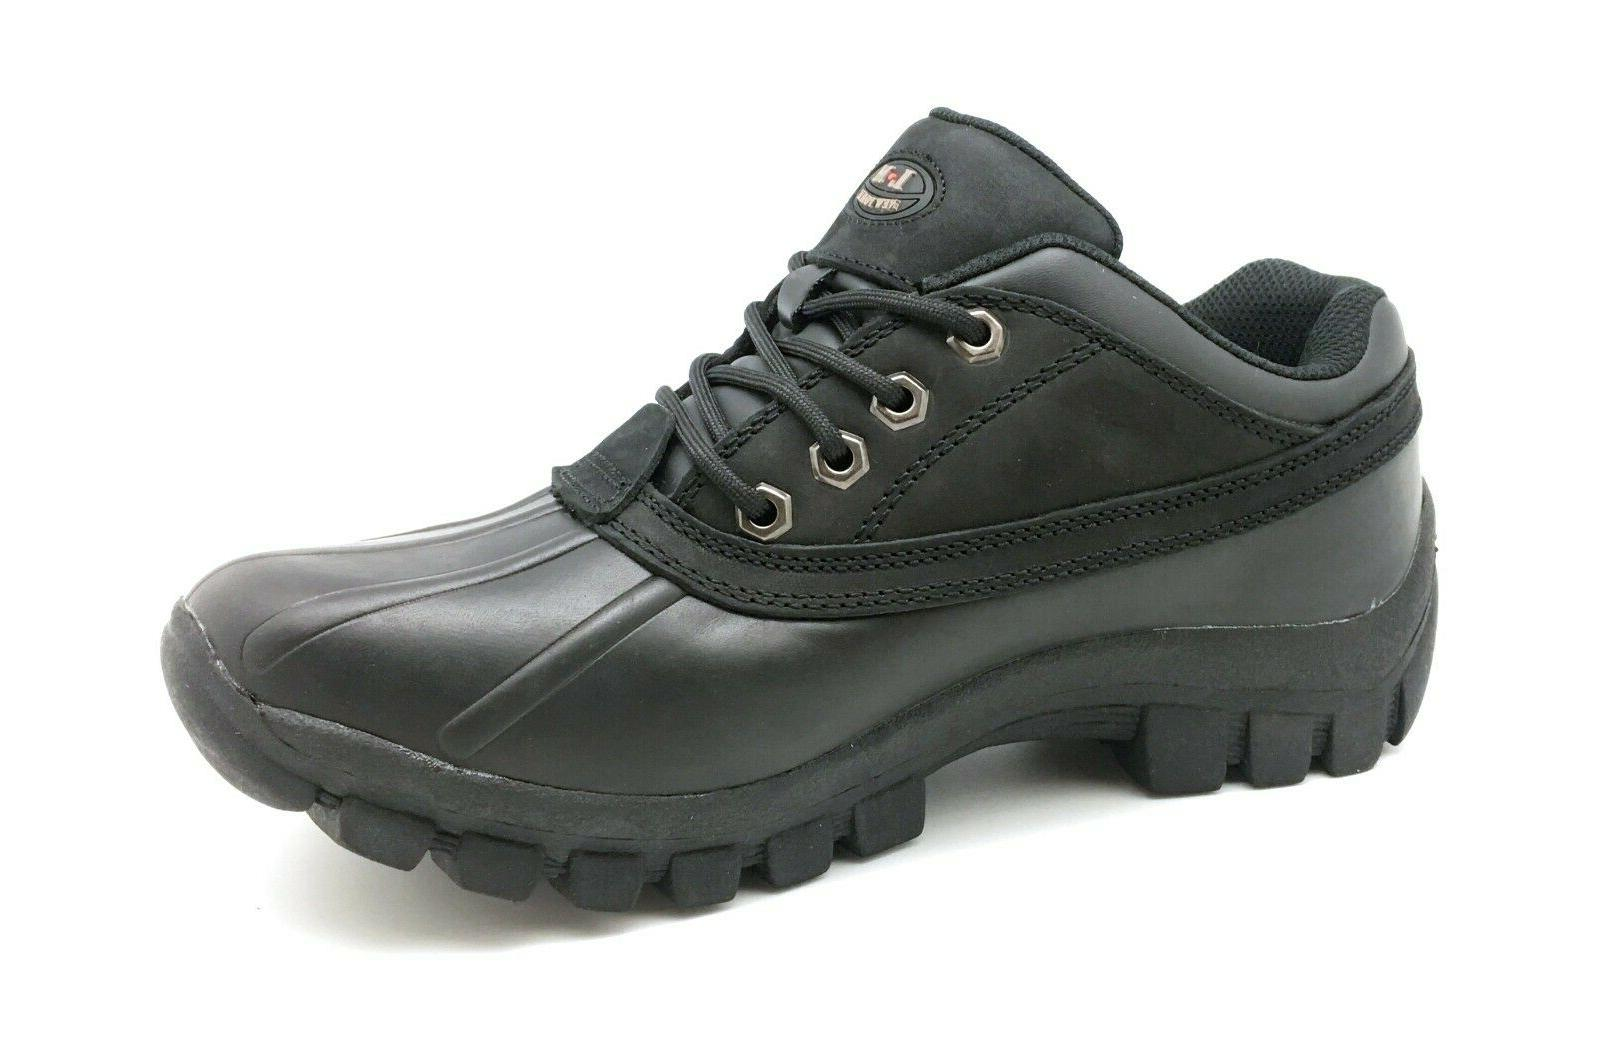 LM Boots Shoes Work Genuine Leather Waterproof